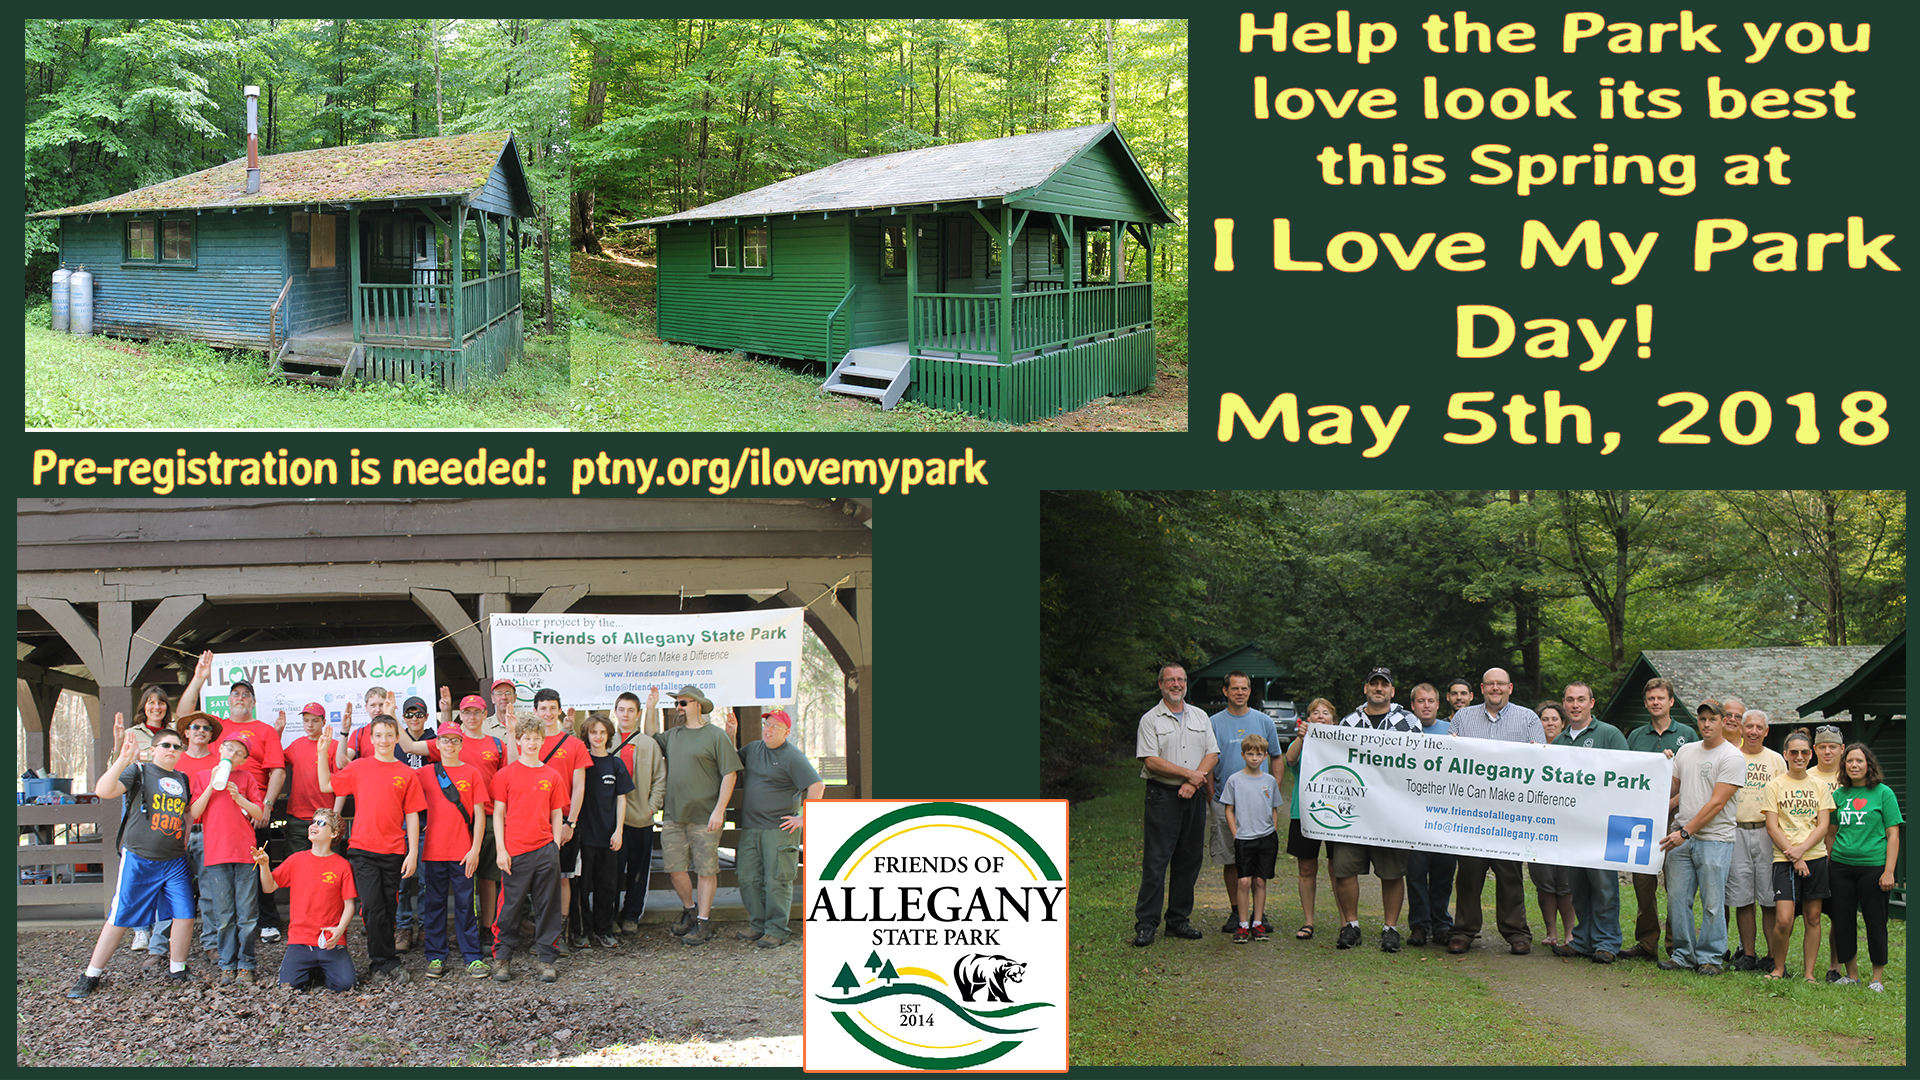 2018 I Love My Park Day at Allegany State Park